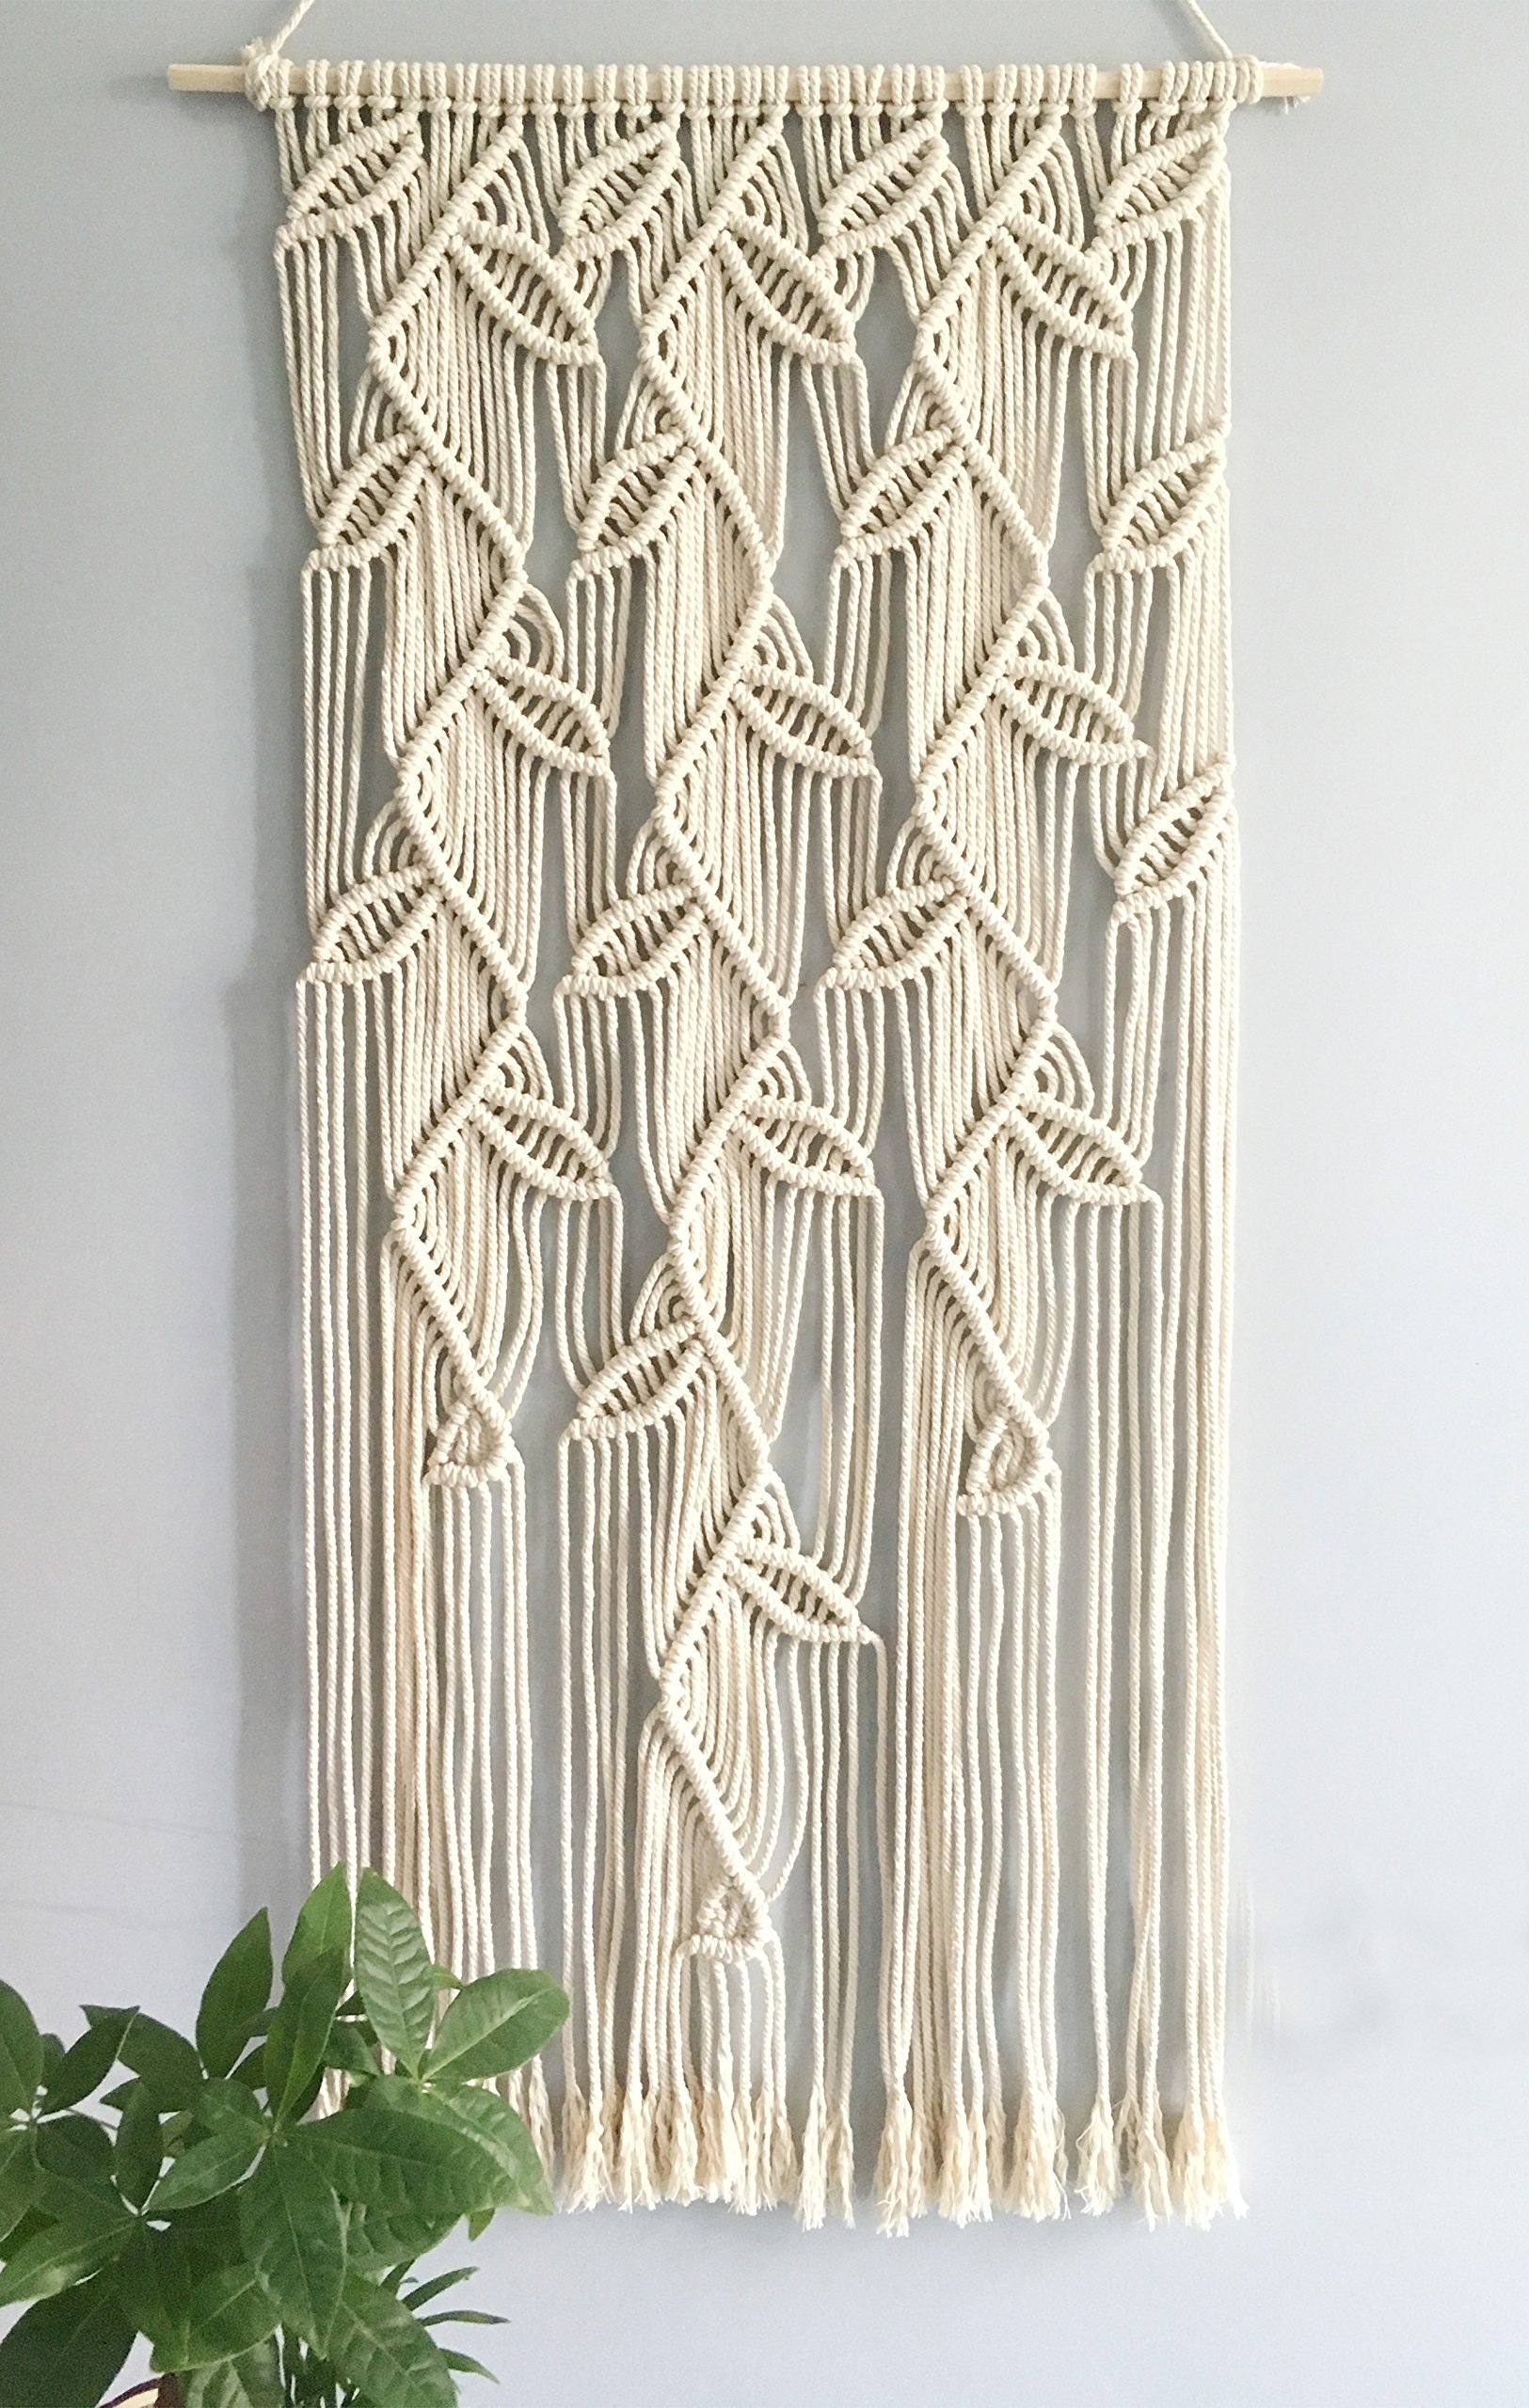 Macrame Leaves Design Wall Hanging Home Décor Woven Curtain Handmade Tapestry Kicthen Window Curtain,19.5 x 39 Inches Beige